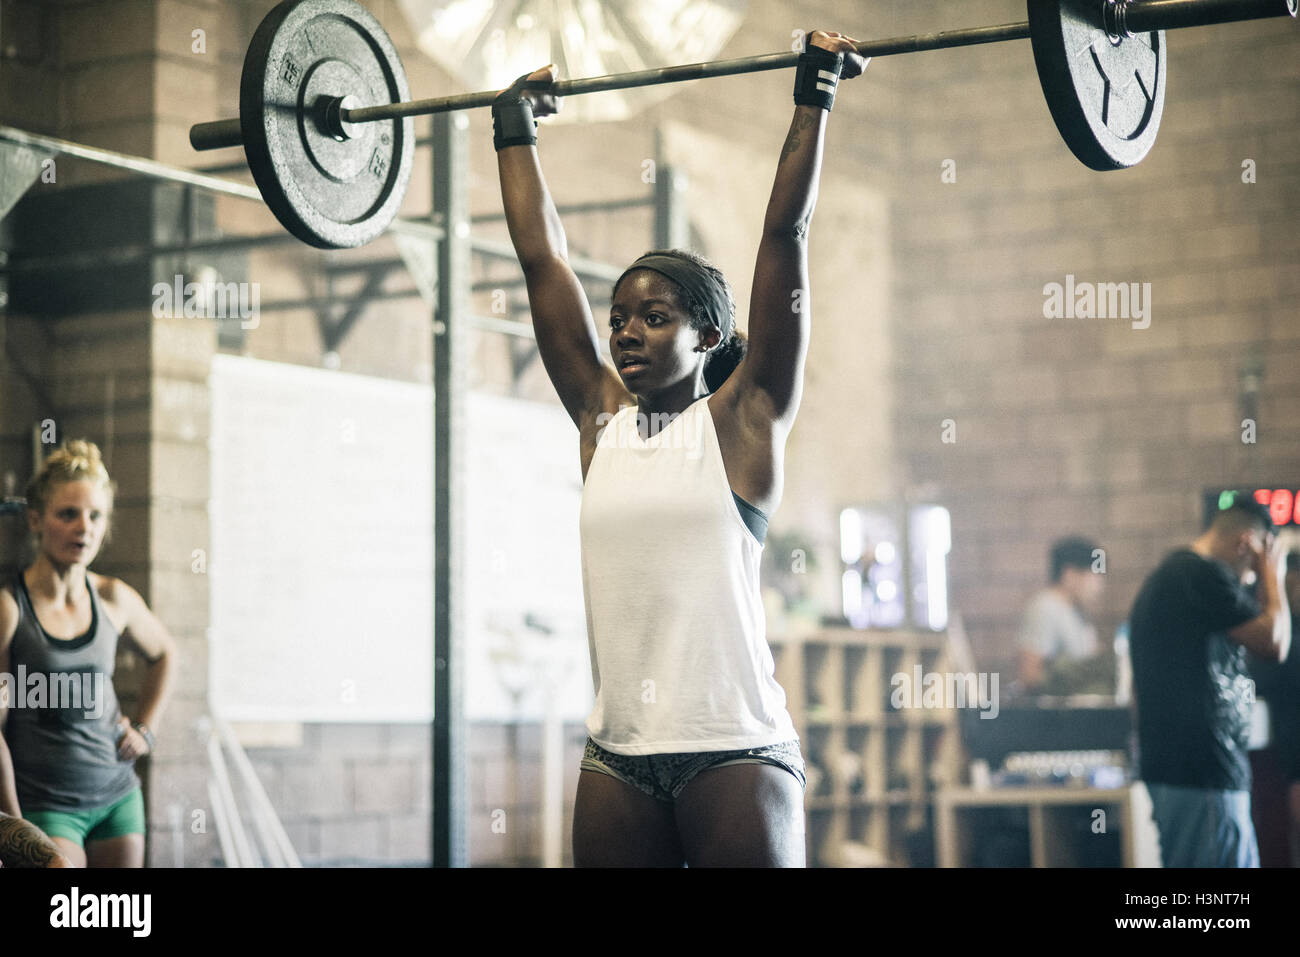 Cross training athlete lifting barbell in gym Stock Photo